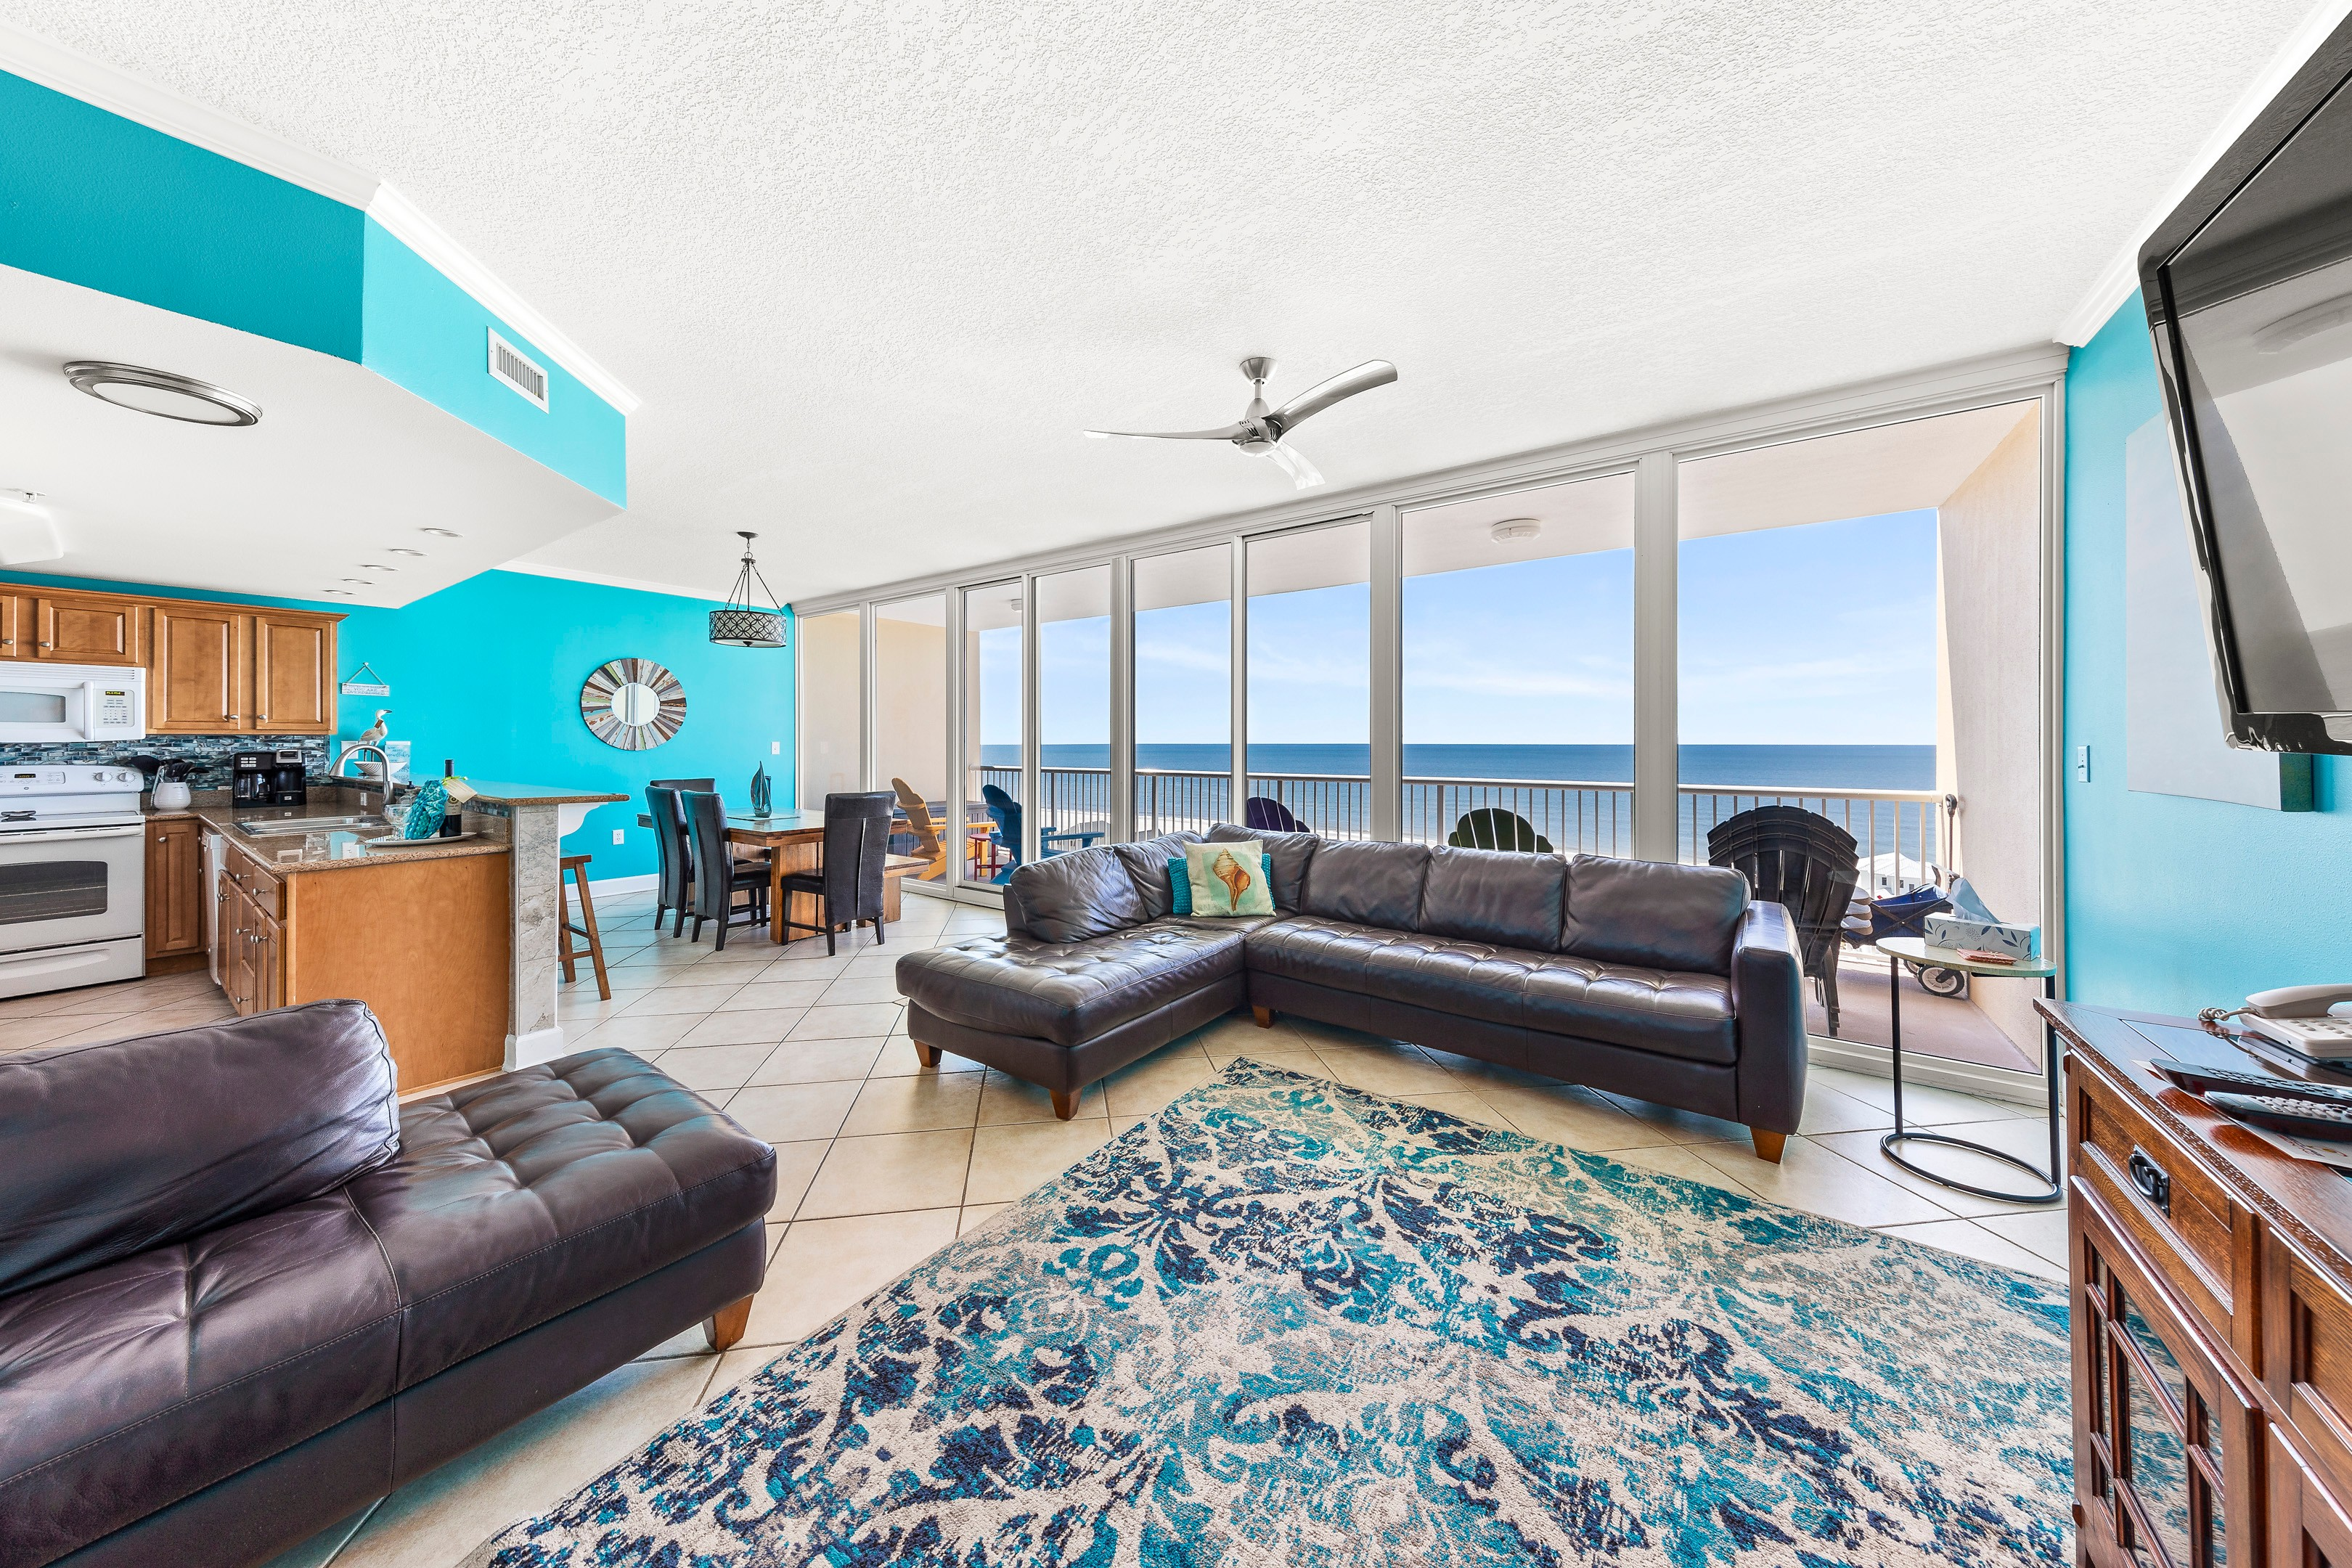 30 foot WALL OF GLASS gives you a great view of the Gulf from inside and the private balcony.